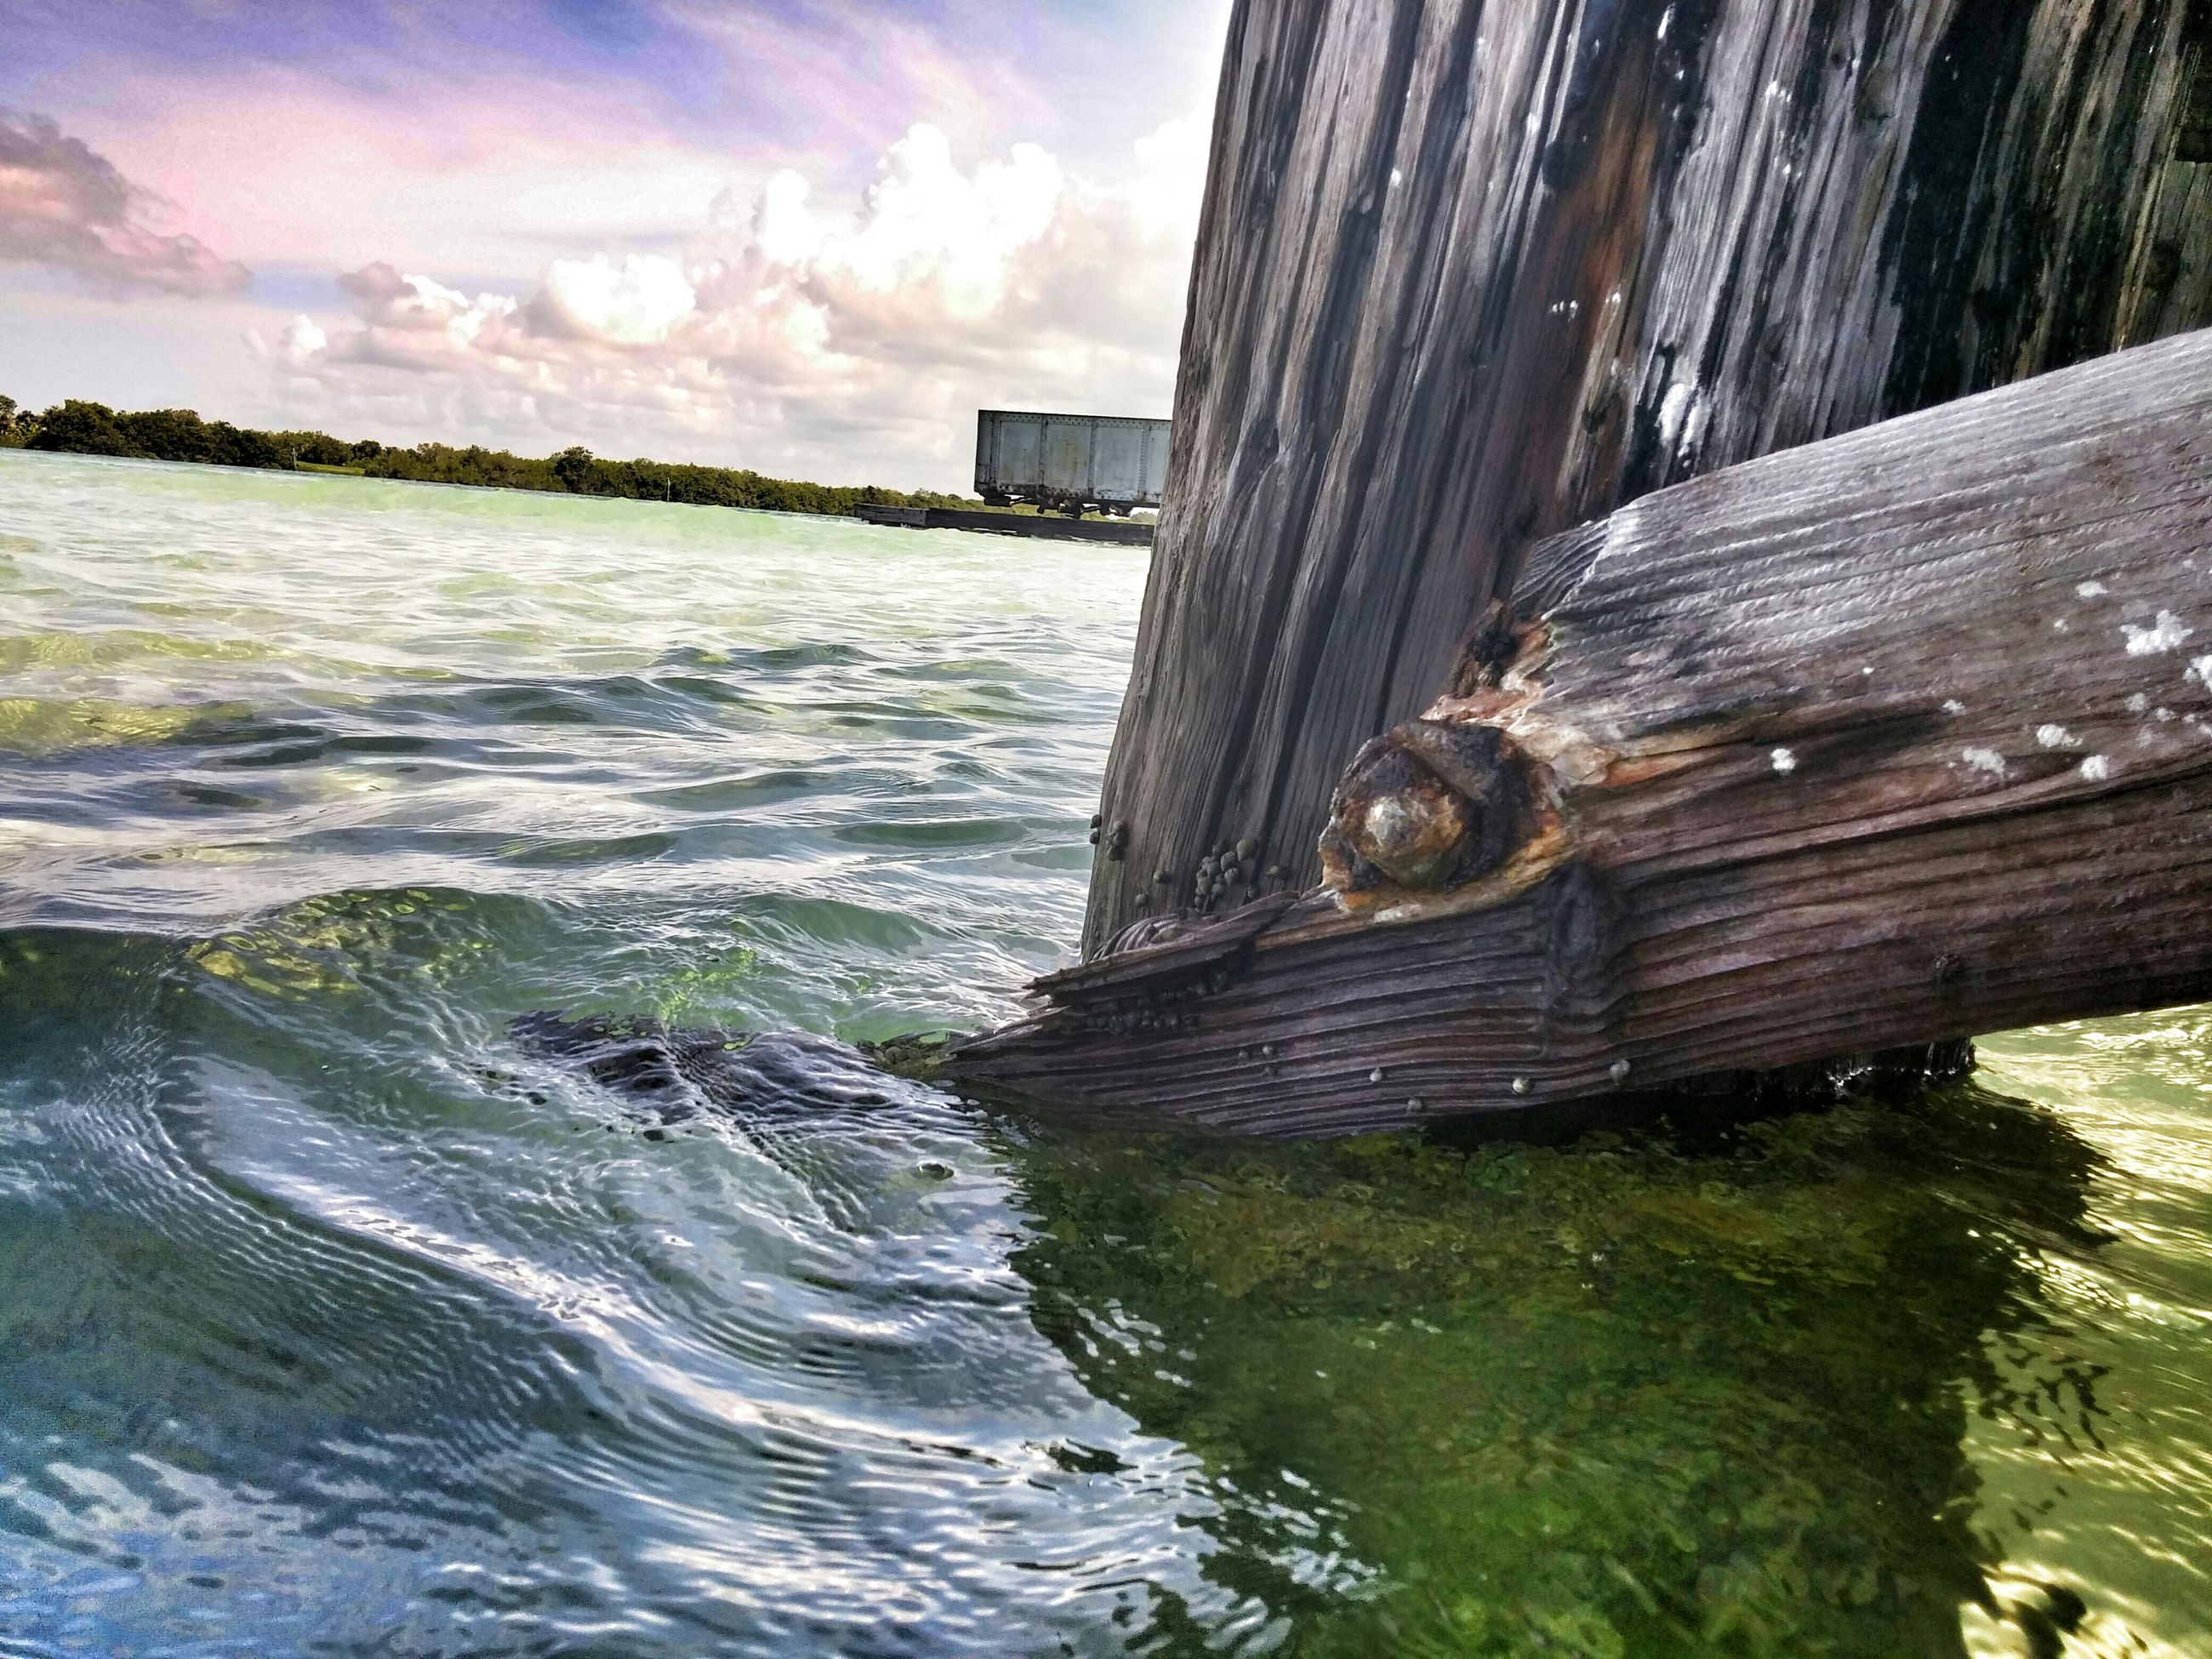 water, sky, sea, cloud - sky, beach, built structure, waterfront, building exterior, cloud, architecture, nature, wood - material, day, outdoors, shore, rippled, beauty in nature, cloudy, tranquility, reflection